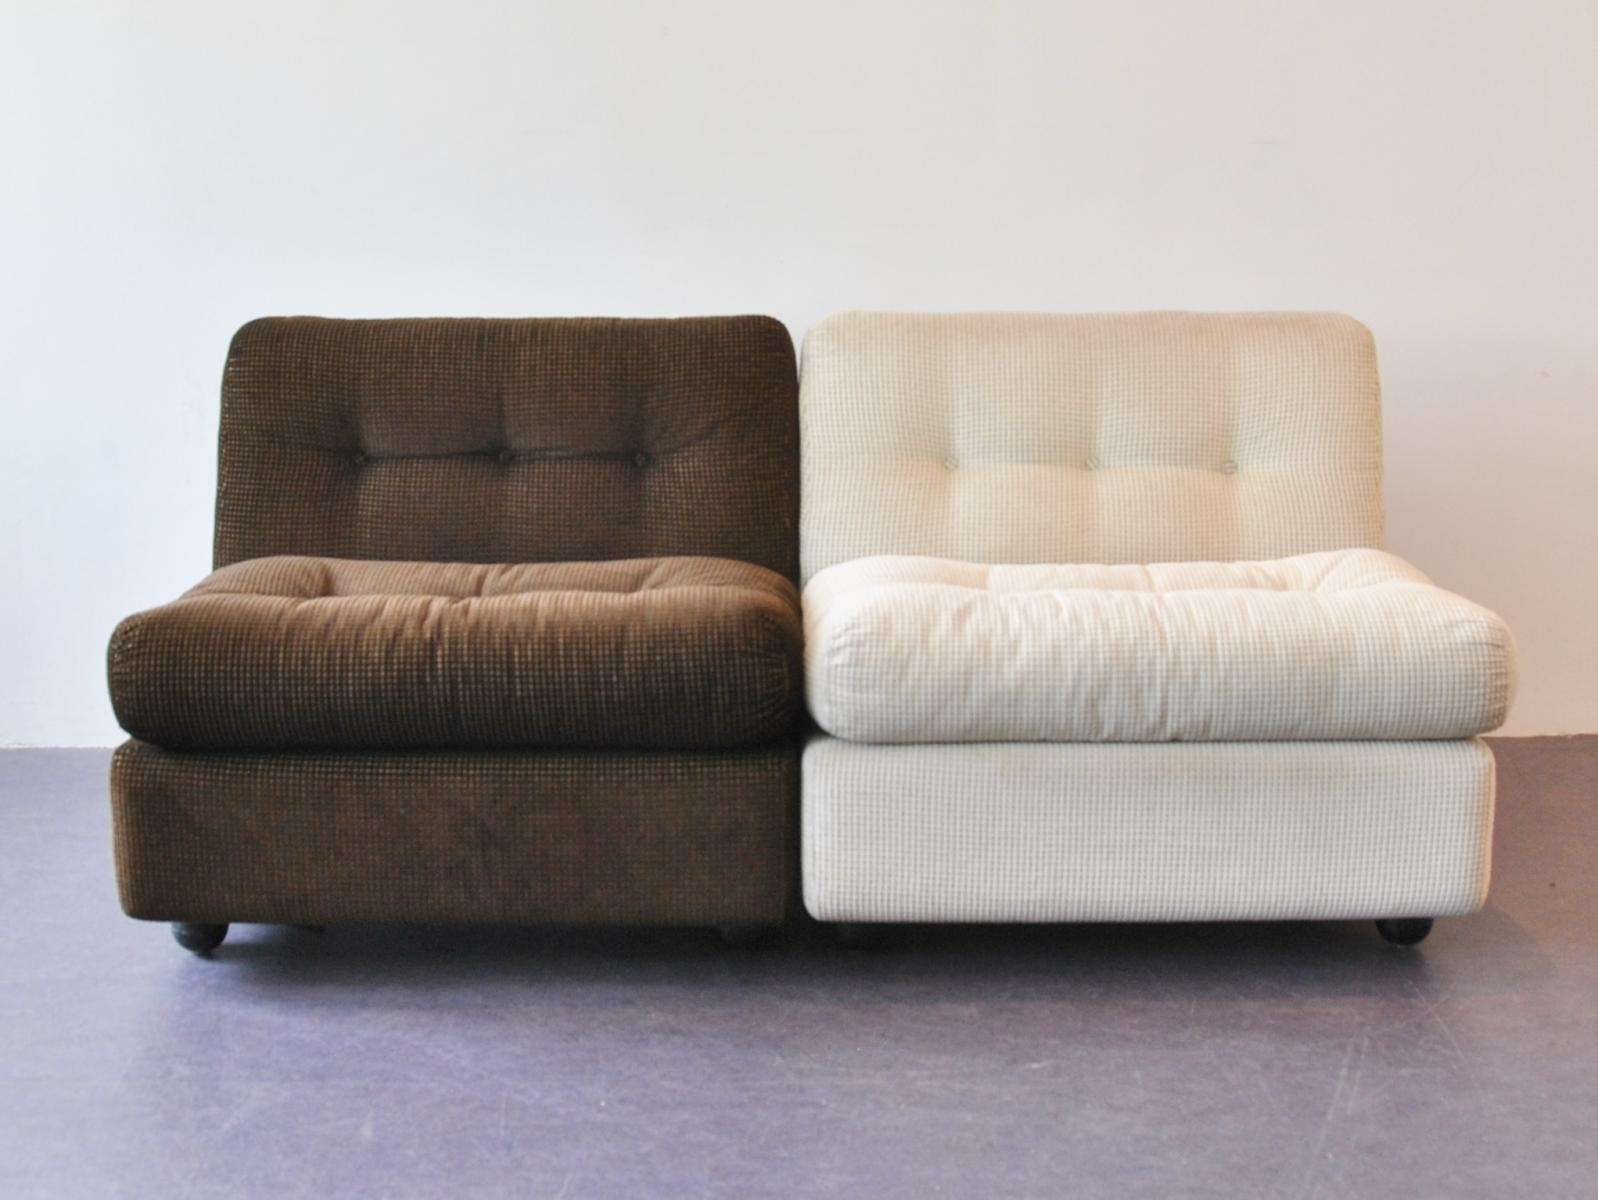 Amanta Easy Chairsmario Bellini For B&b Italia, Set Of 2 For Pertaining To Bellini Couches (Image 1 of 20)